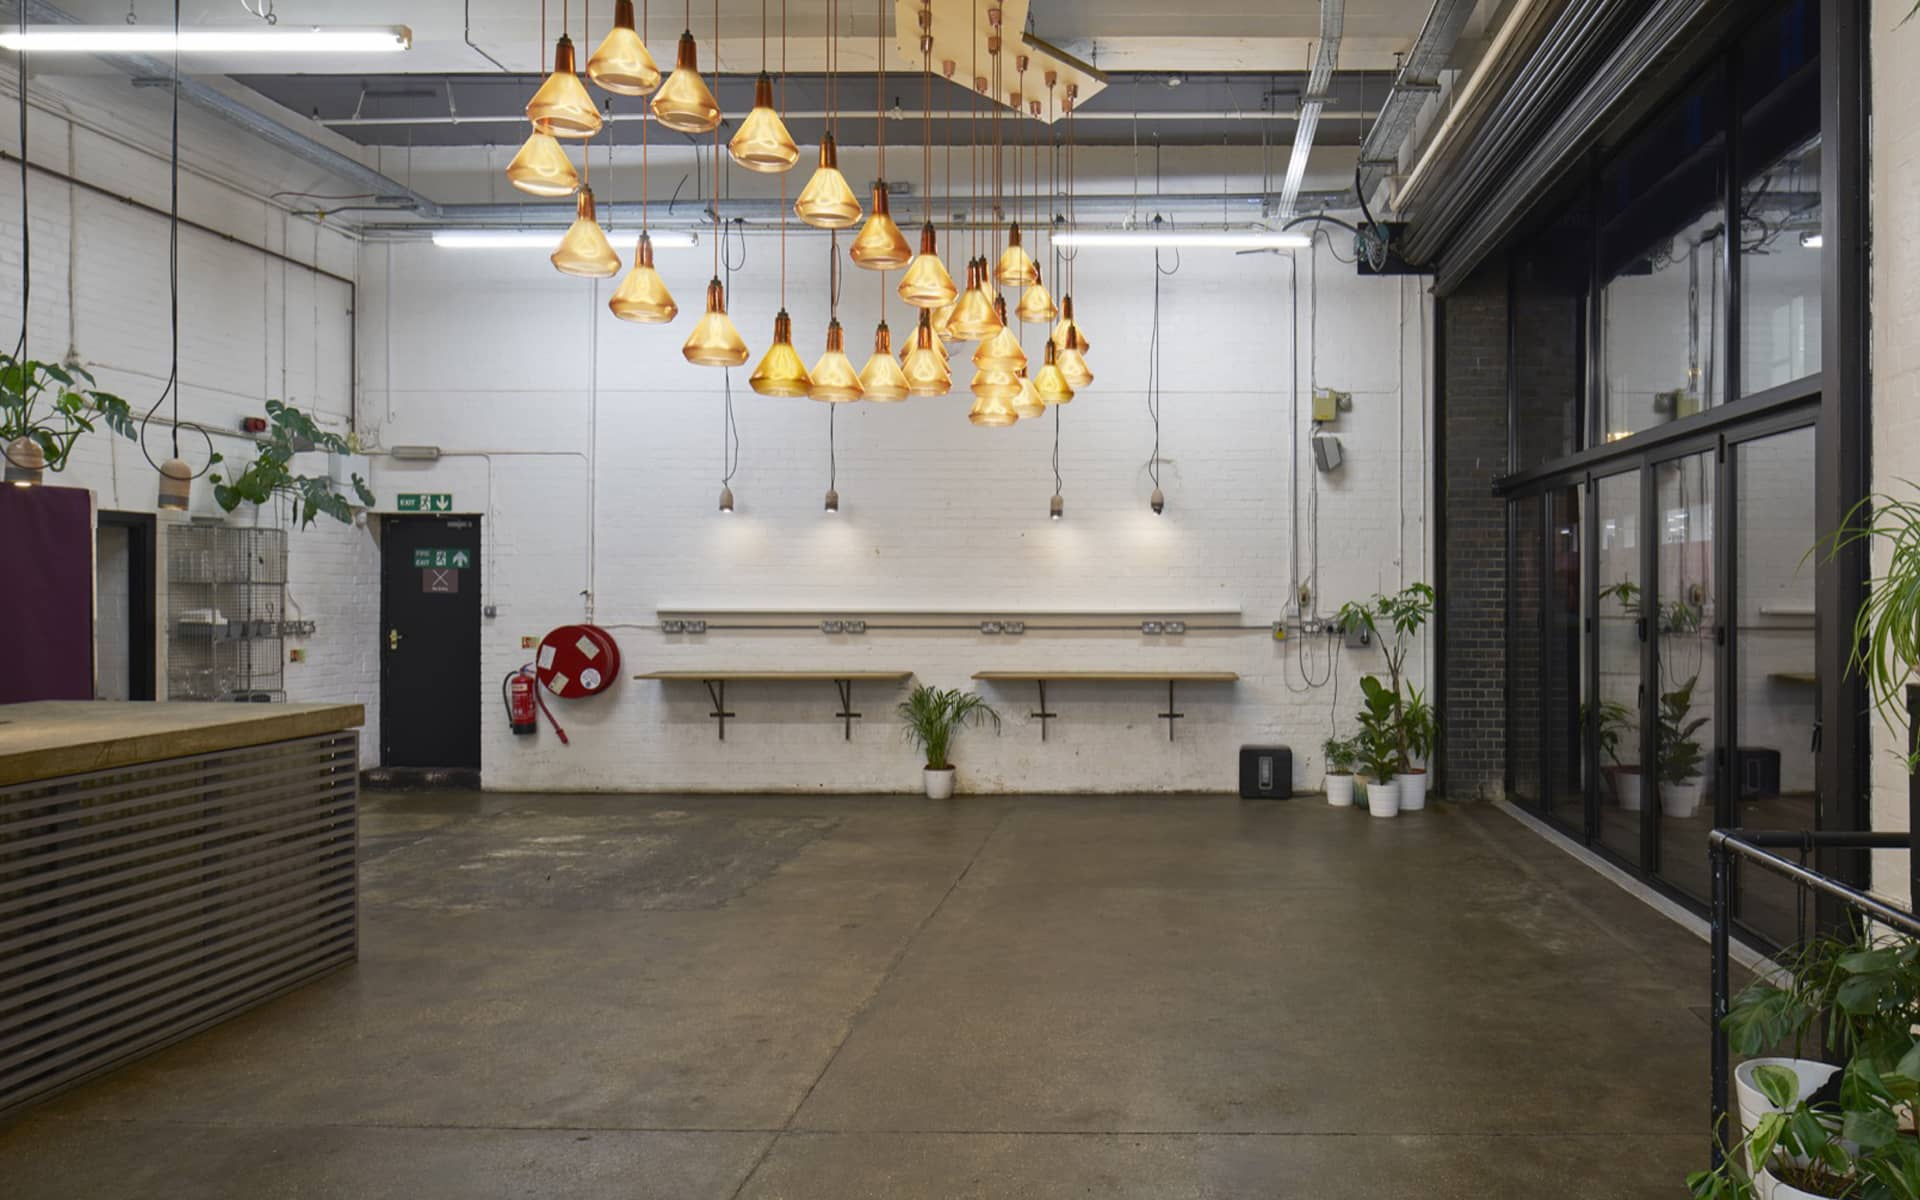 Venue space London Shoreditch